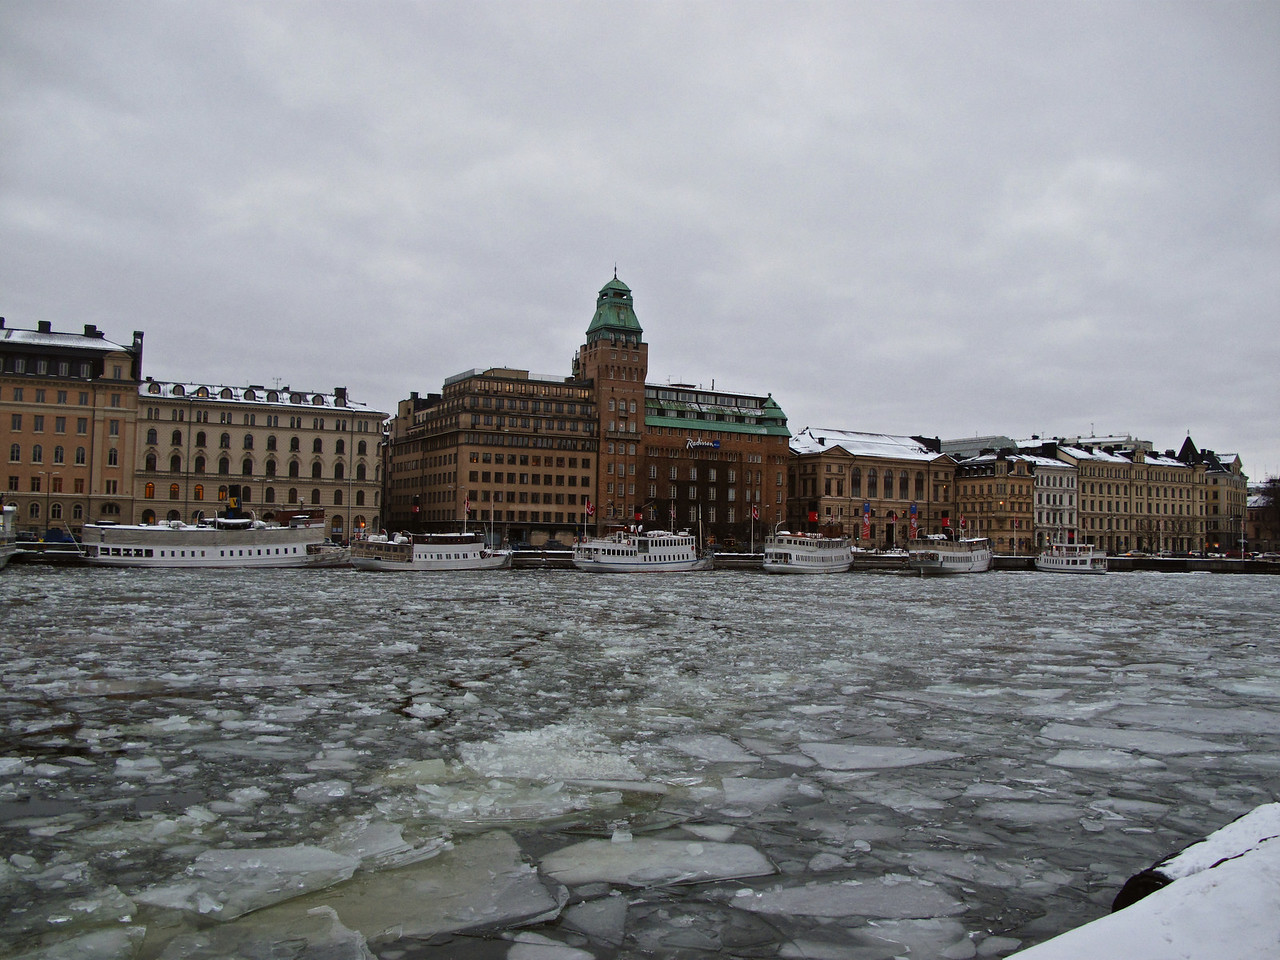 Across from the Strandvagen sits the SAS Royal VIking hotel.  Directly behind that sits the Grand Hotel.